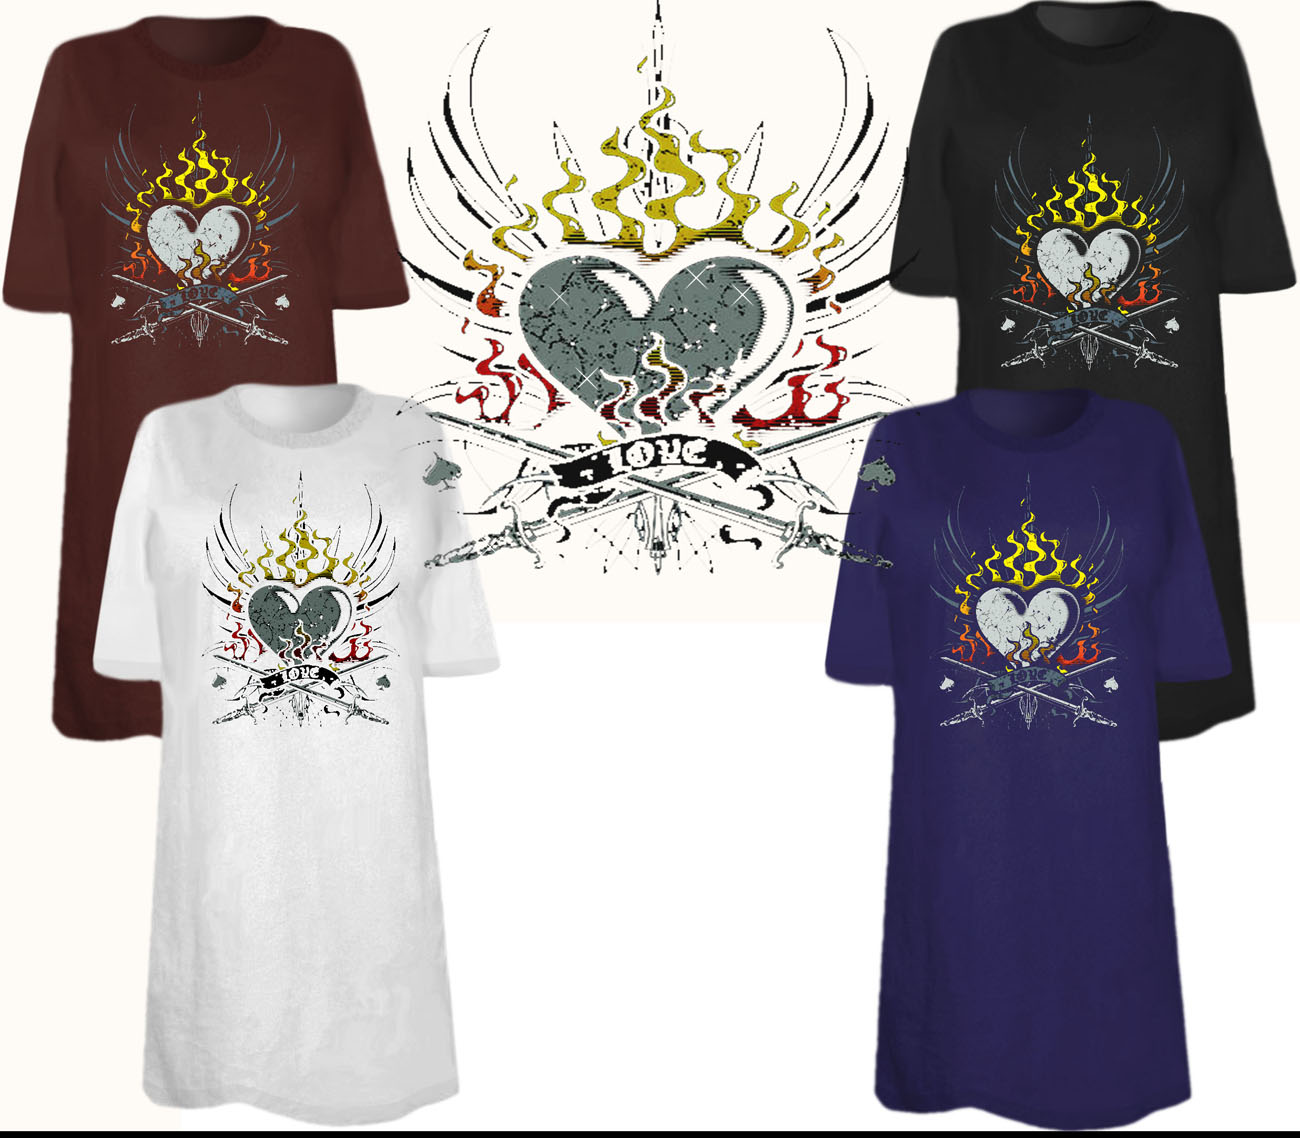 Sale heart on fire tattoo plus size supersize t shirts for 3x shirts on sale